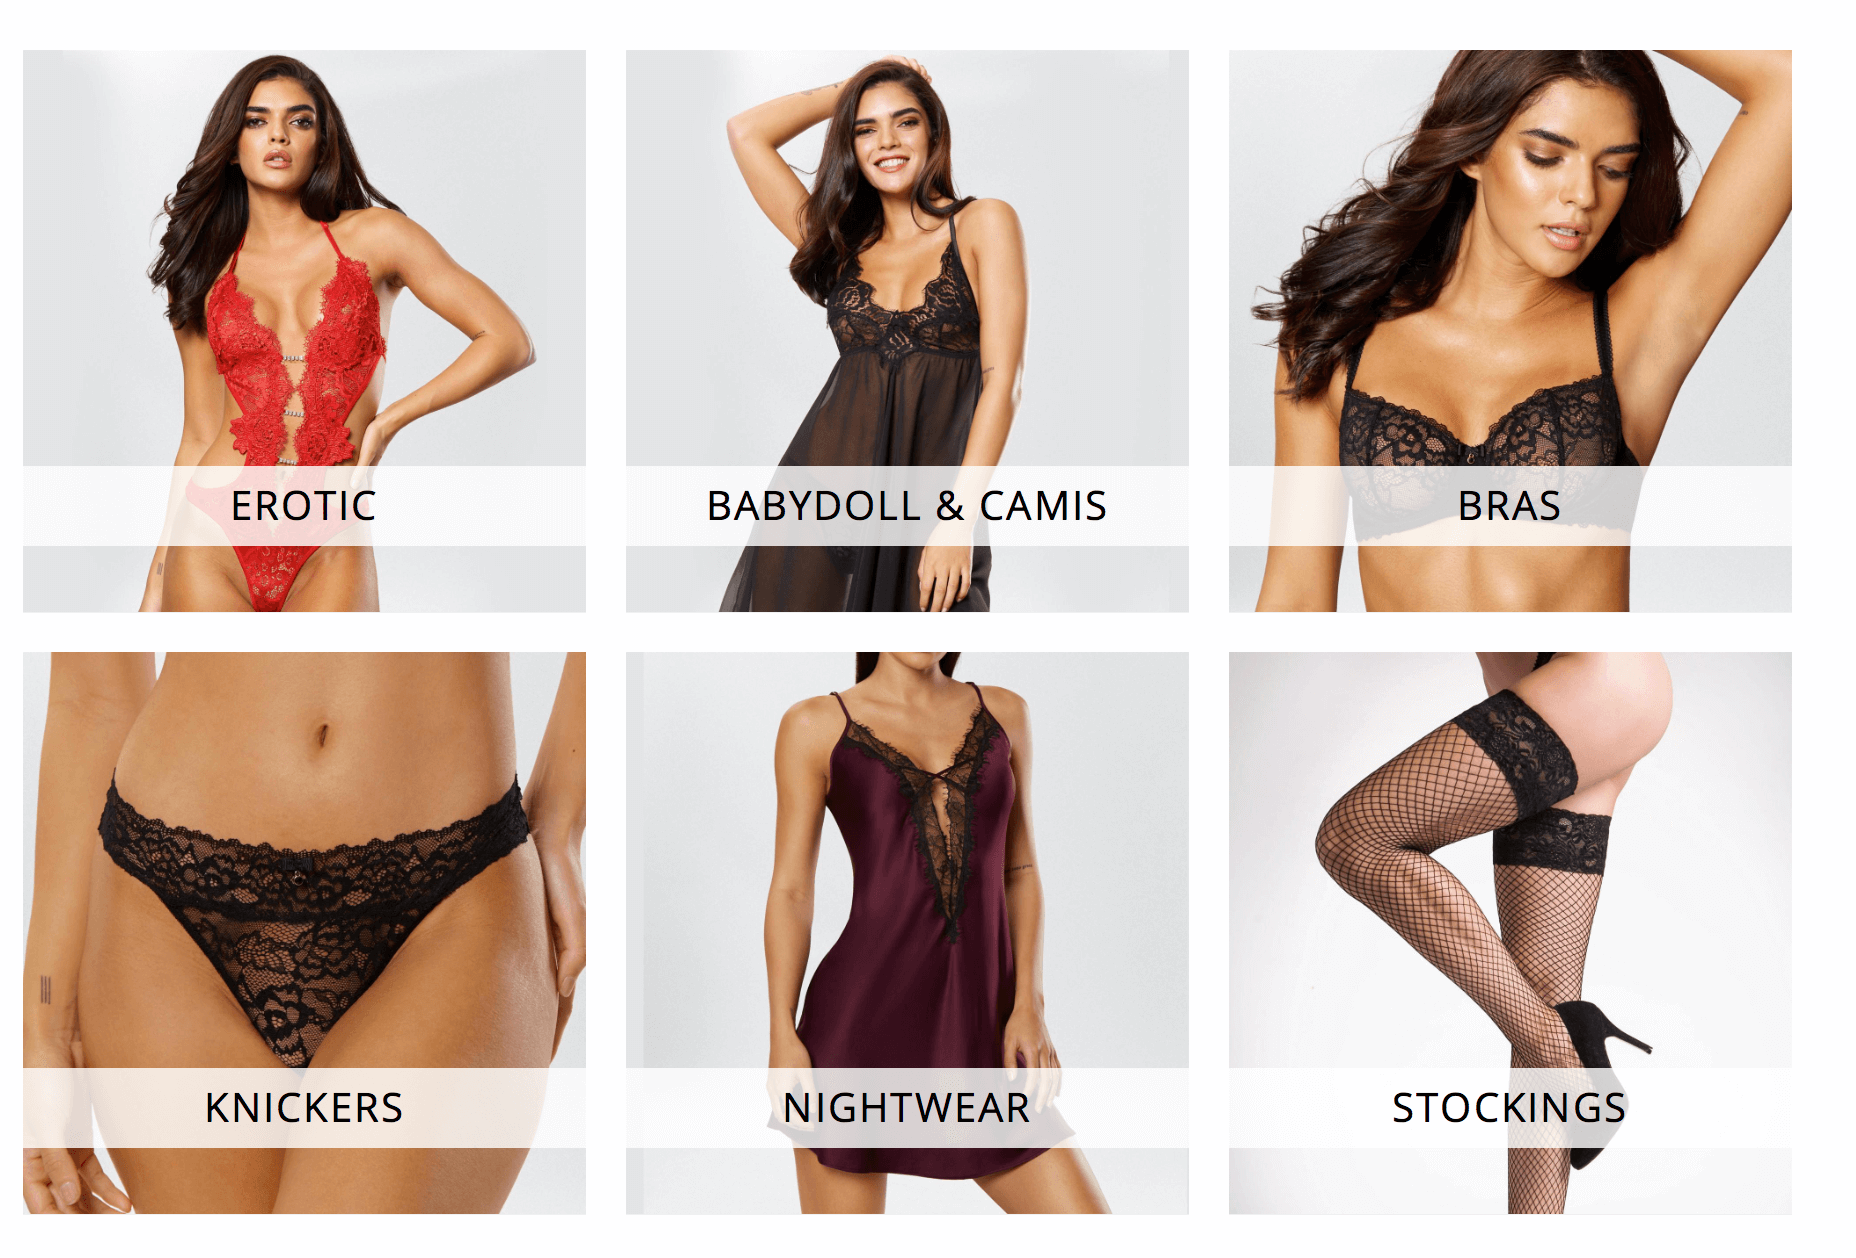 ann summers lingerie erotic sexy underwear bras knickers nightwear stockings valentines presents